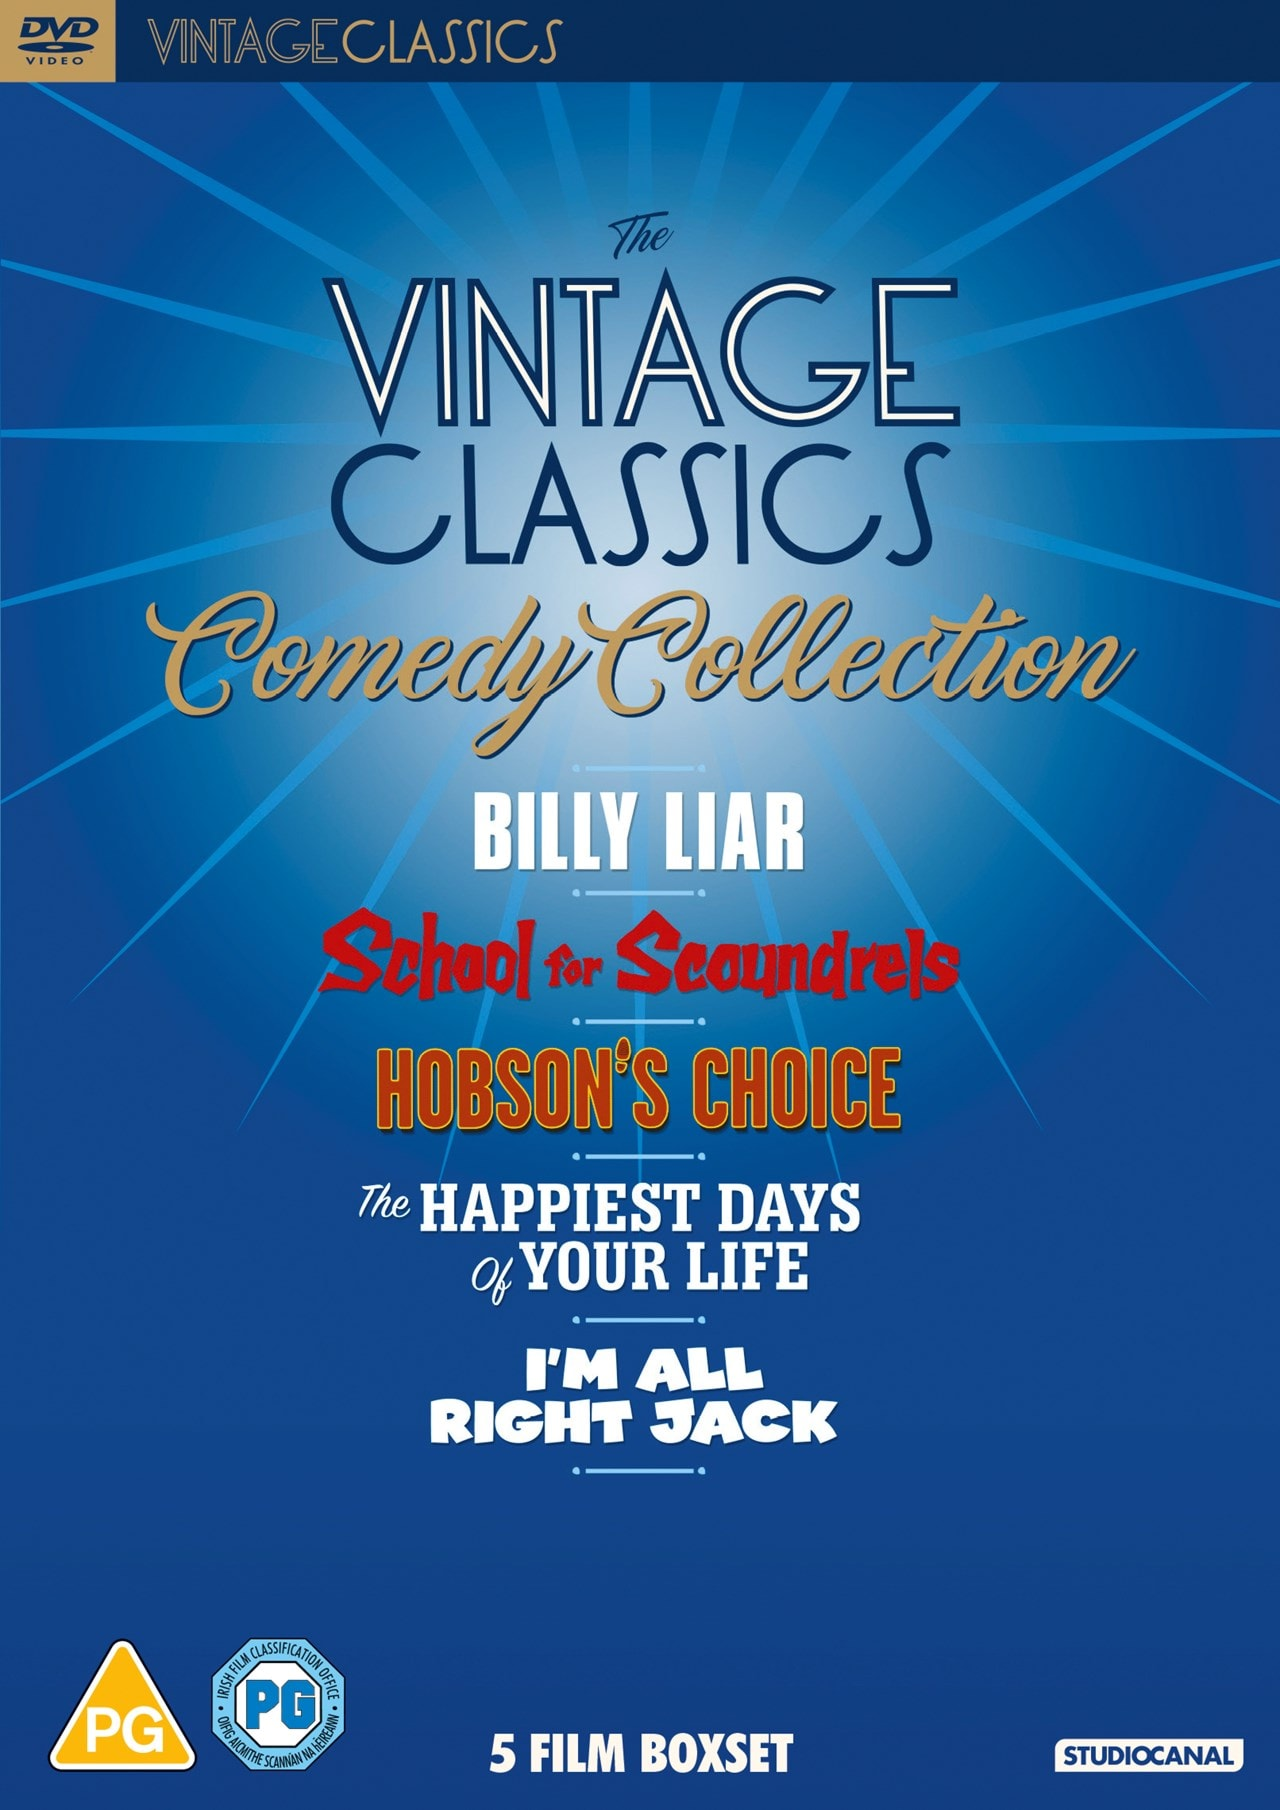 The Vintage Classics Comedy Collection - 1